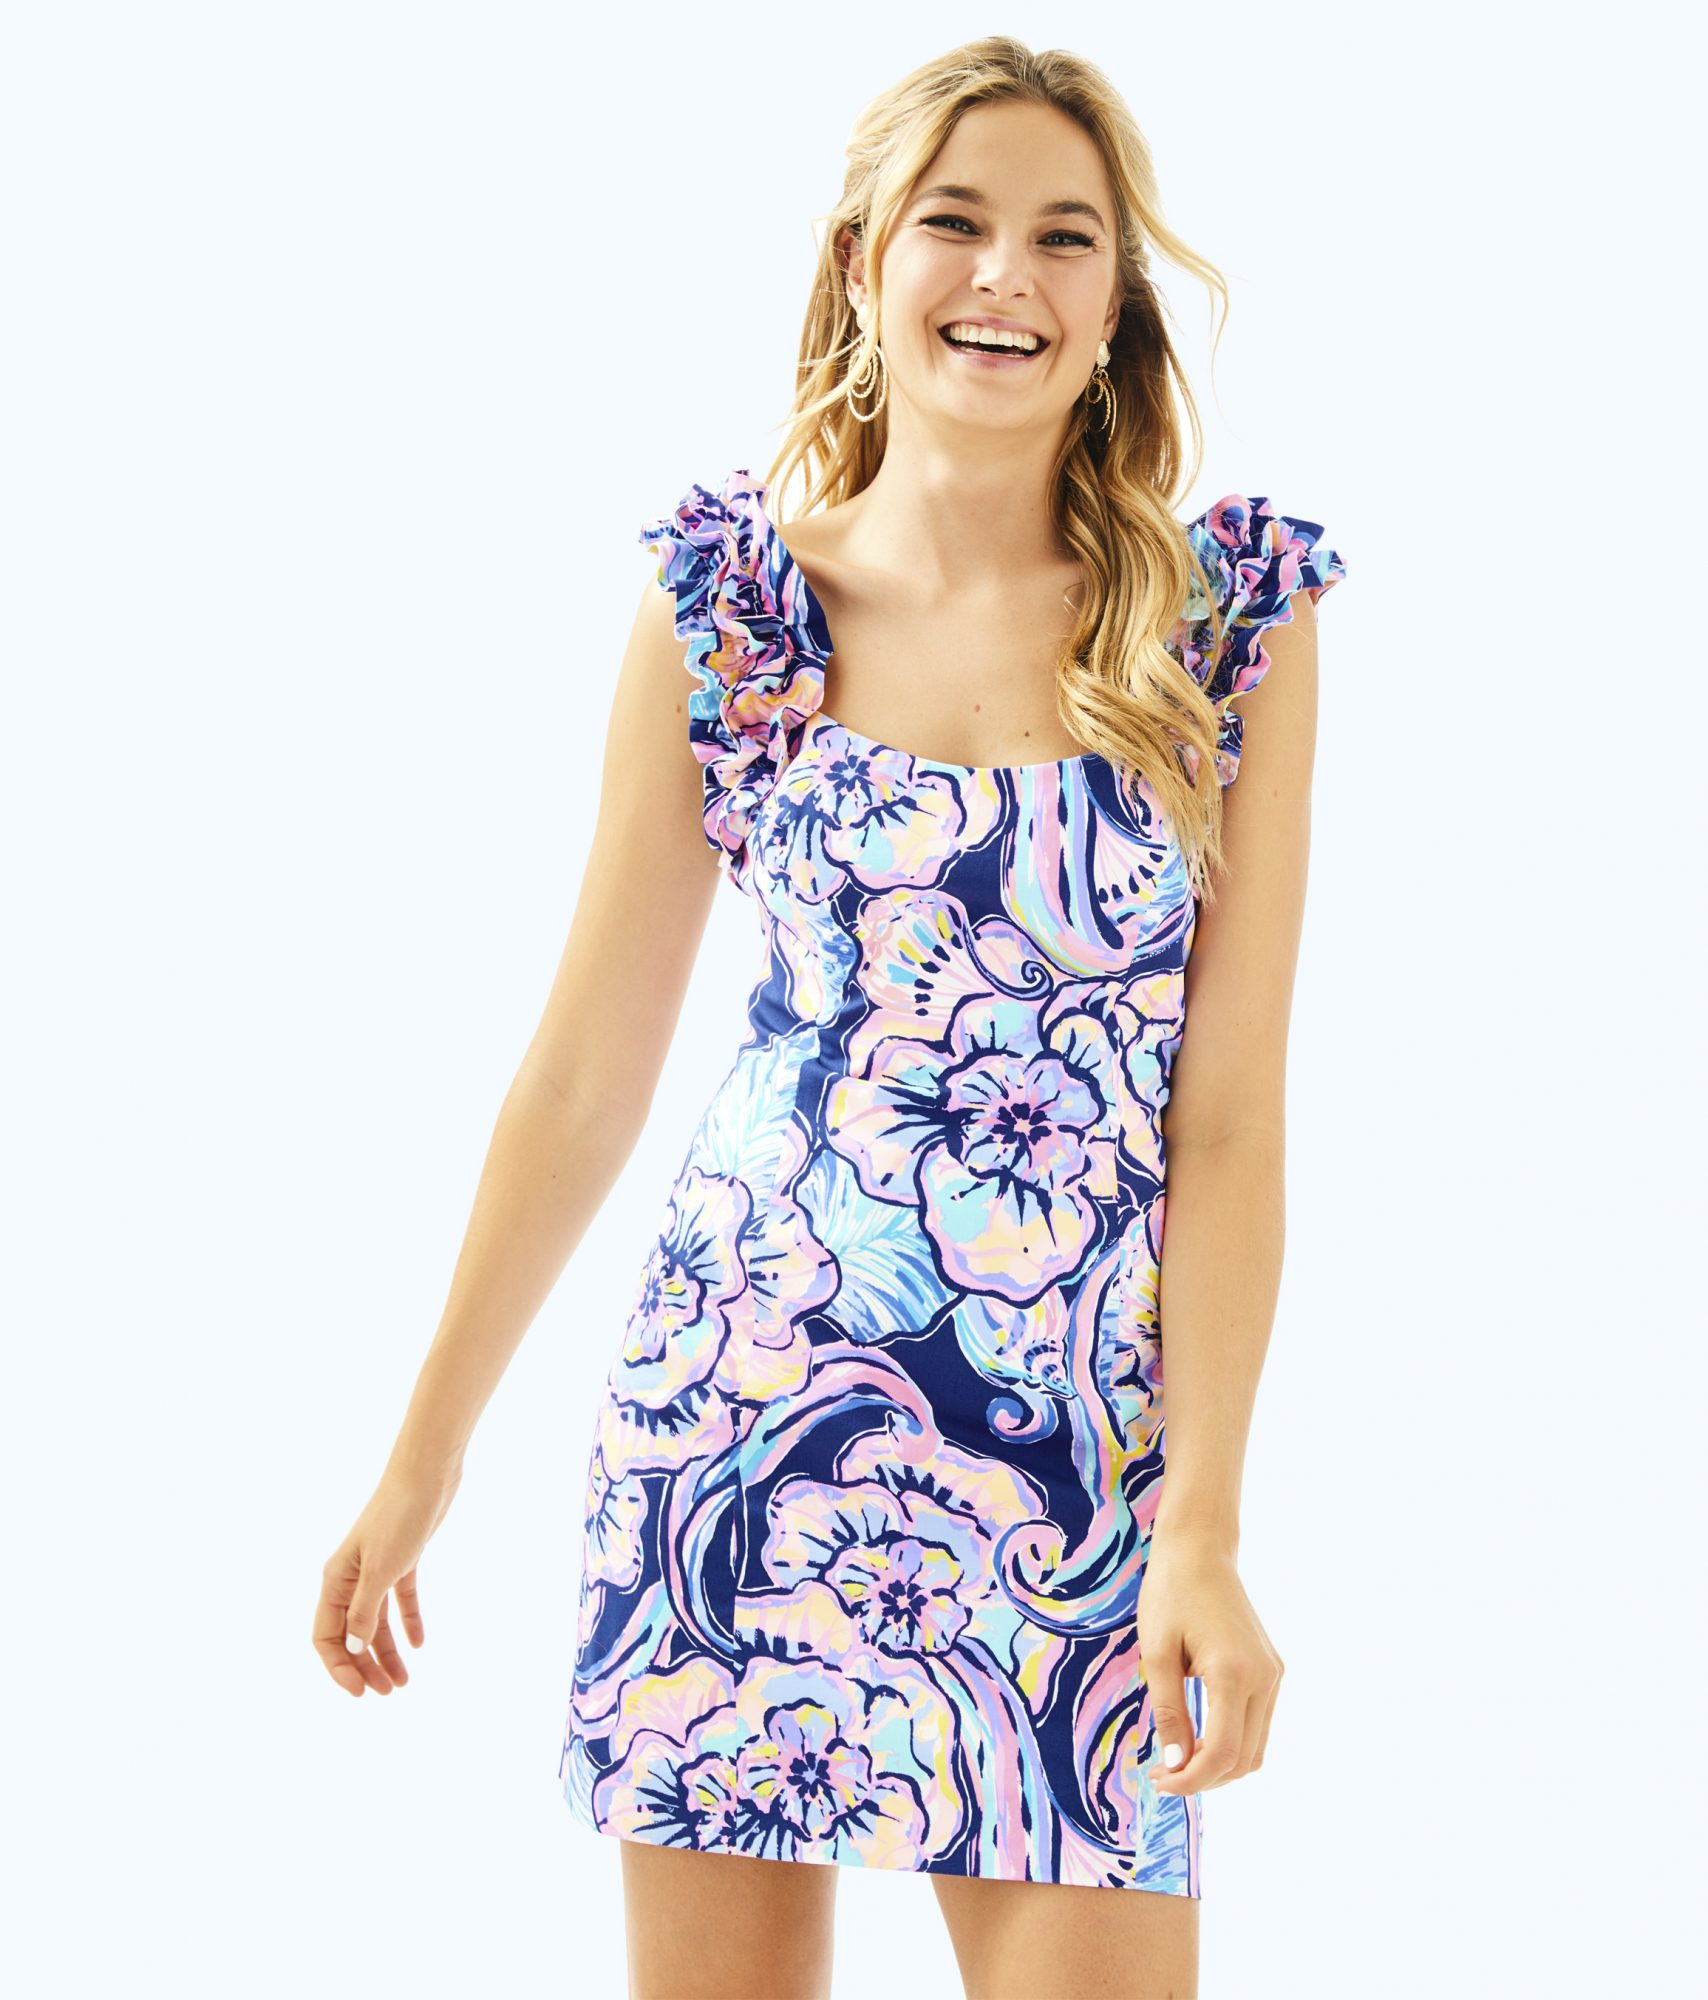 Lilly Pulitzer's Summer Collection Just Launched, Here's Everything We're Buying ASAP lilly-p-mini-dress